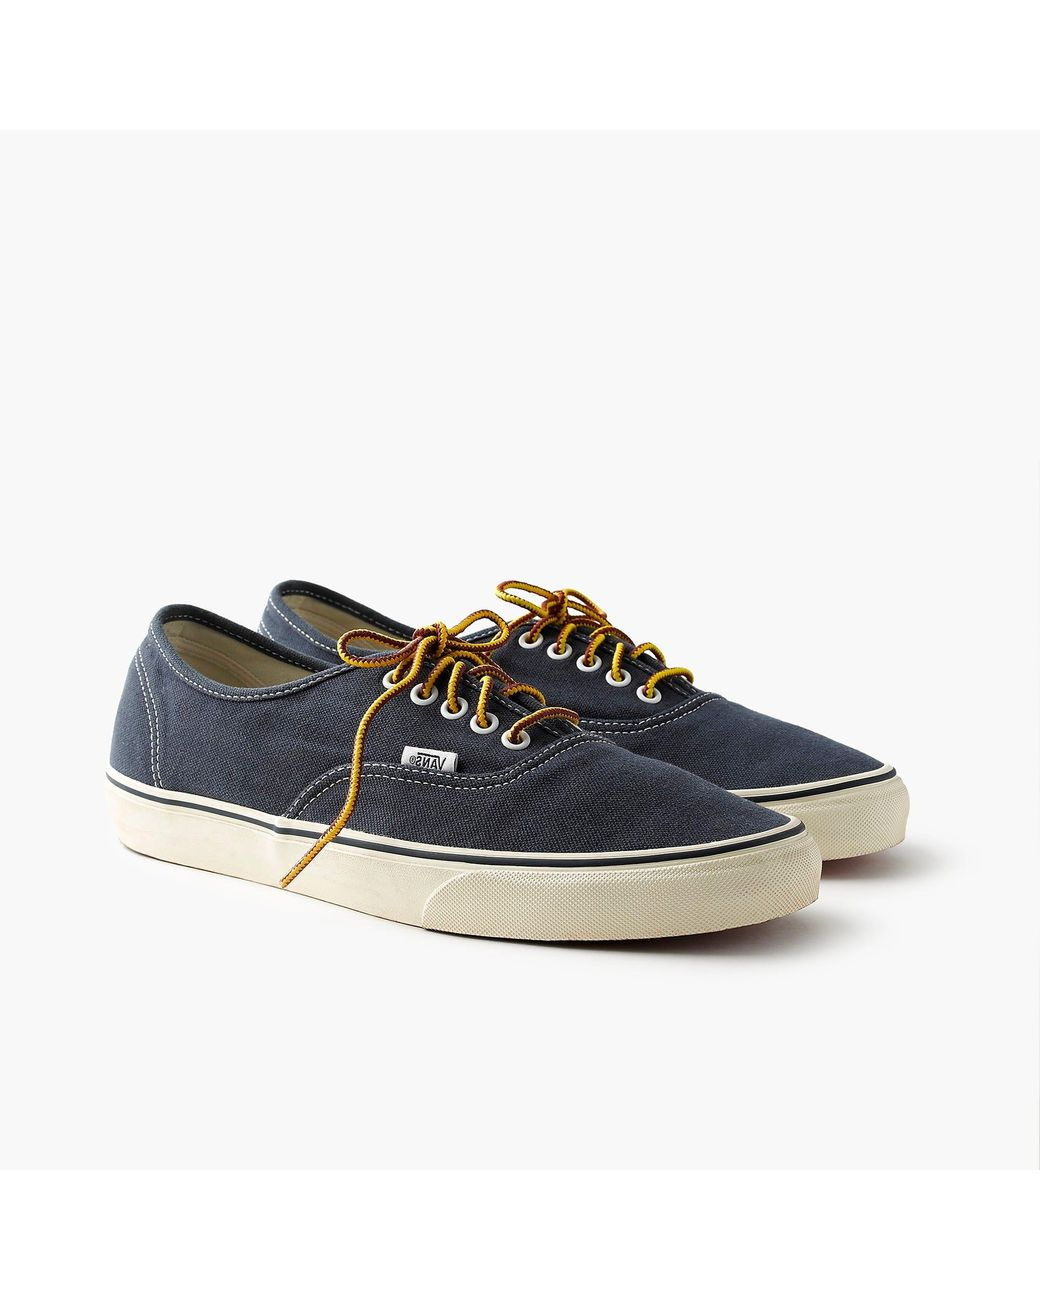 5bb6a792da Vans Washed Canvas Authentic Sneakers in Blue for Men - Lyst